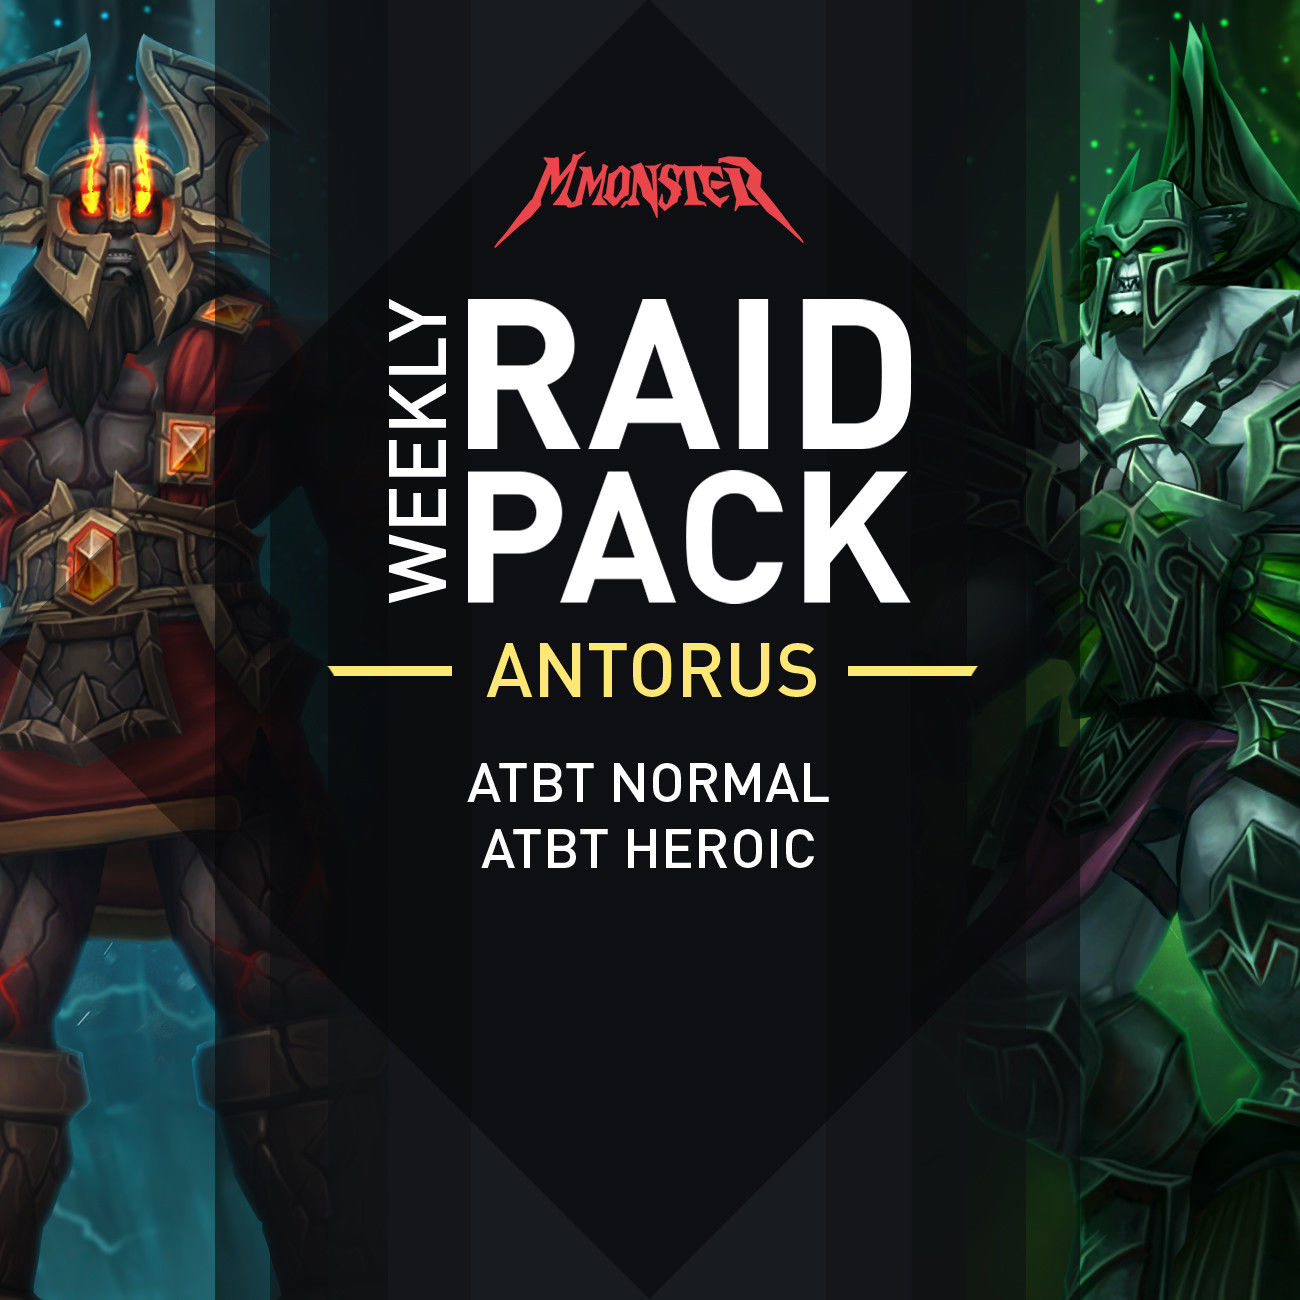 Legion Weekly Antorus Pack